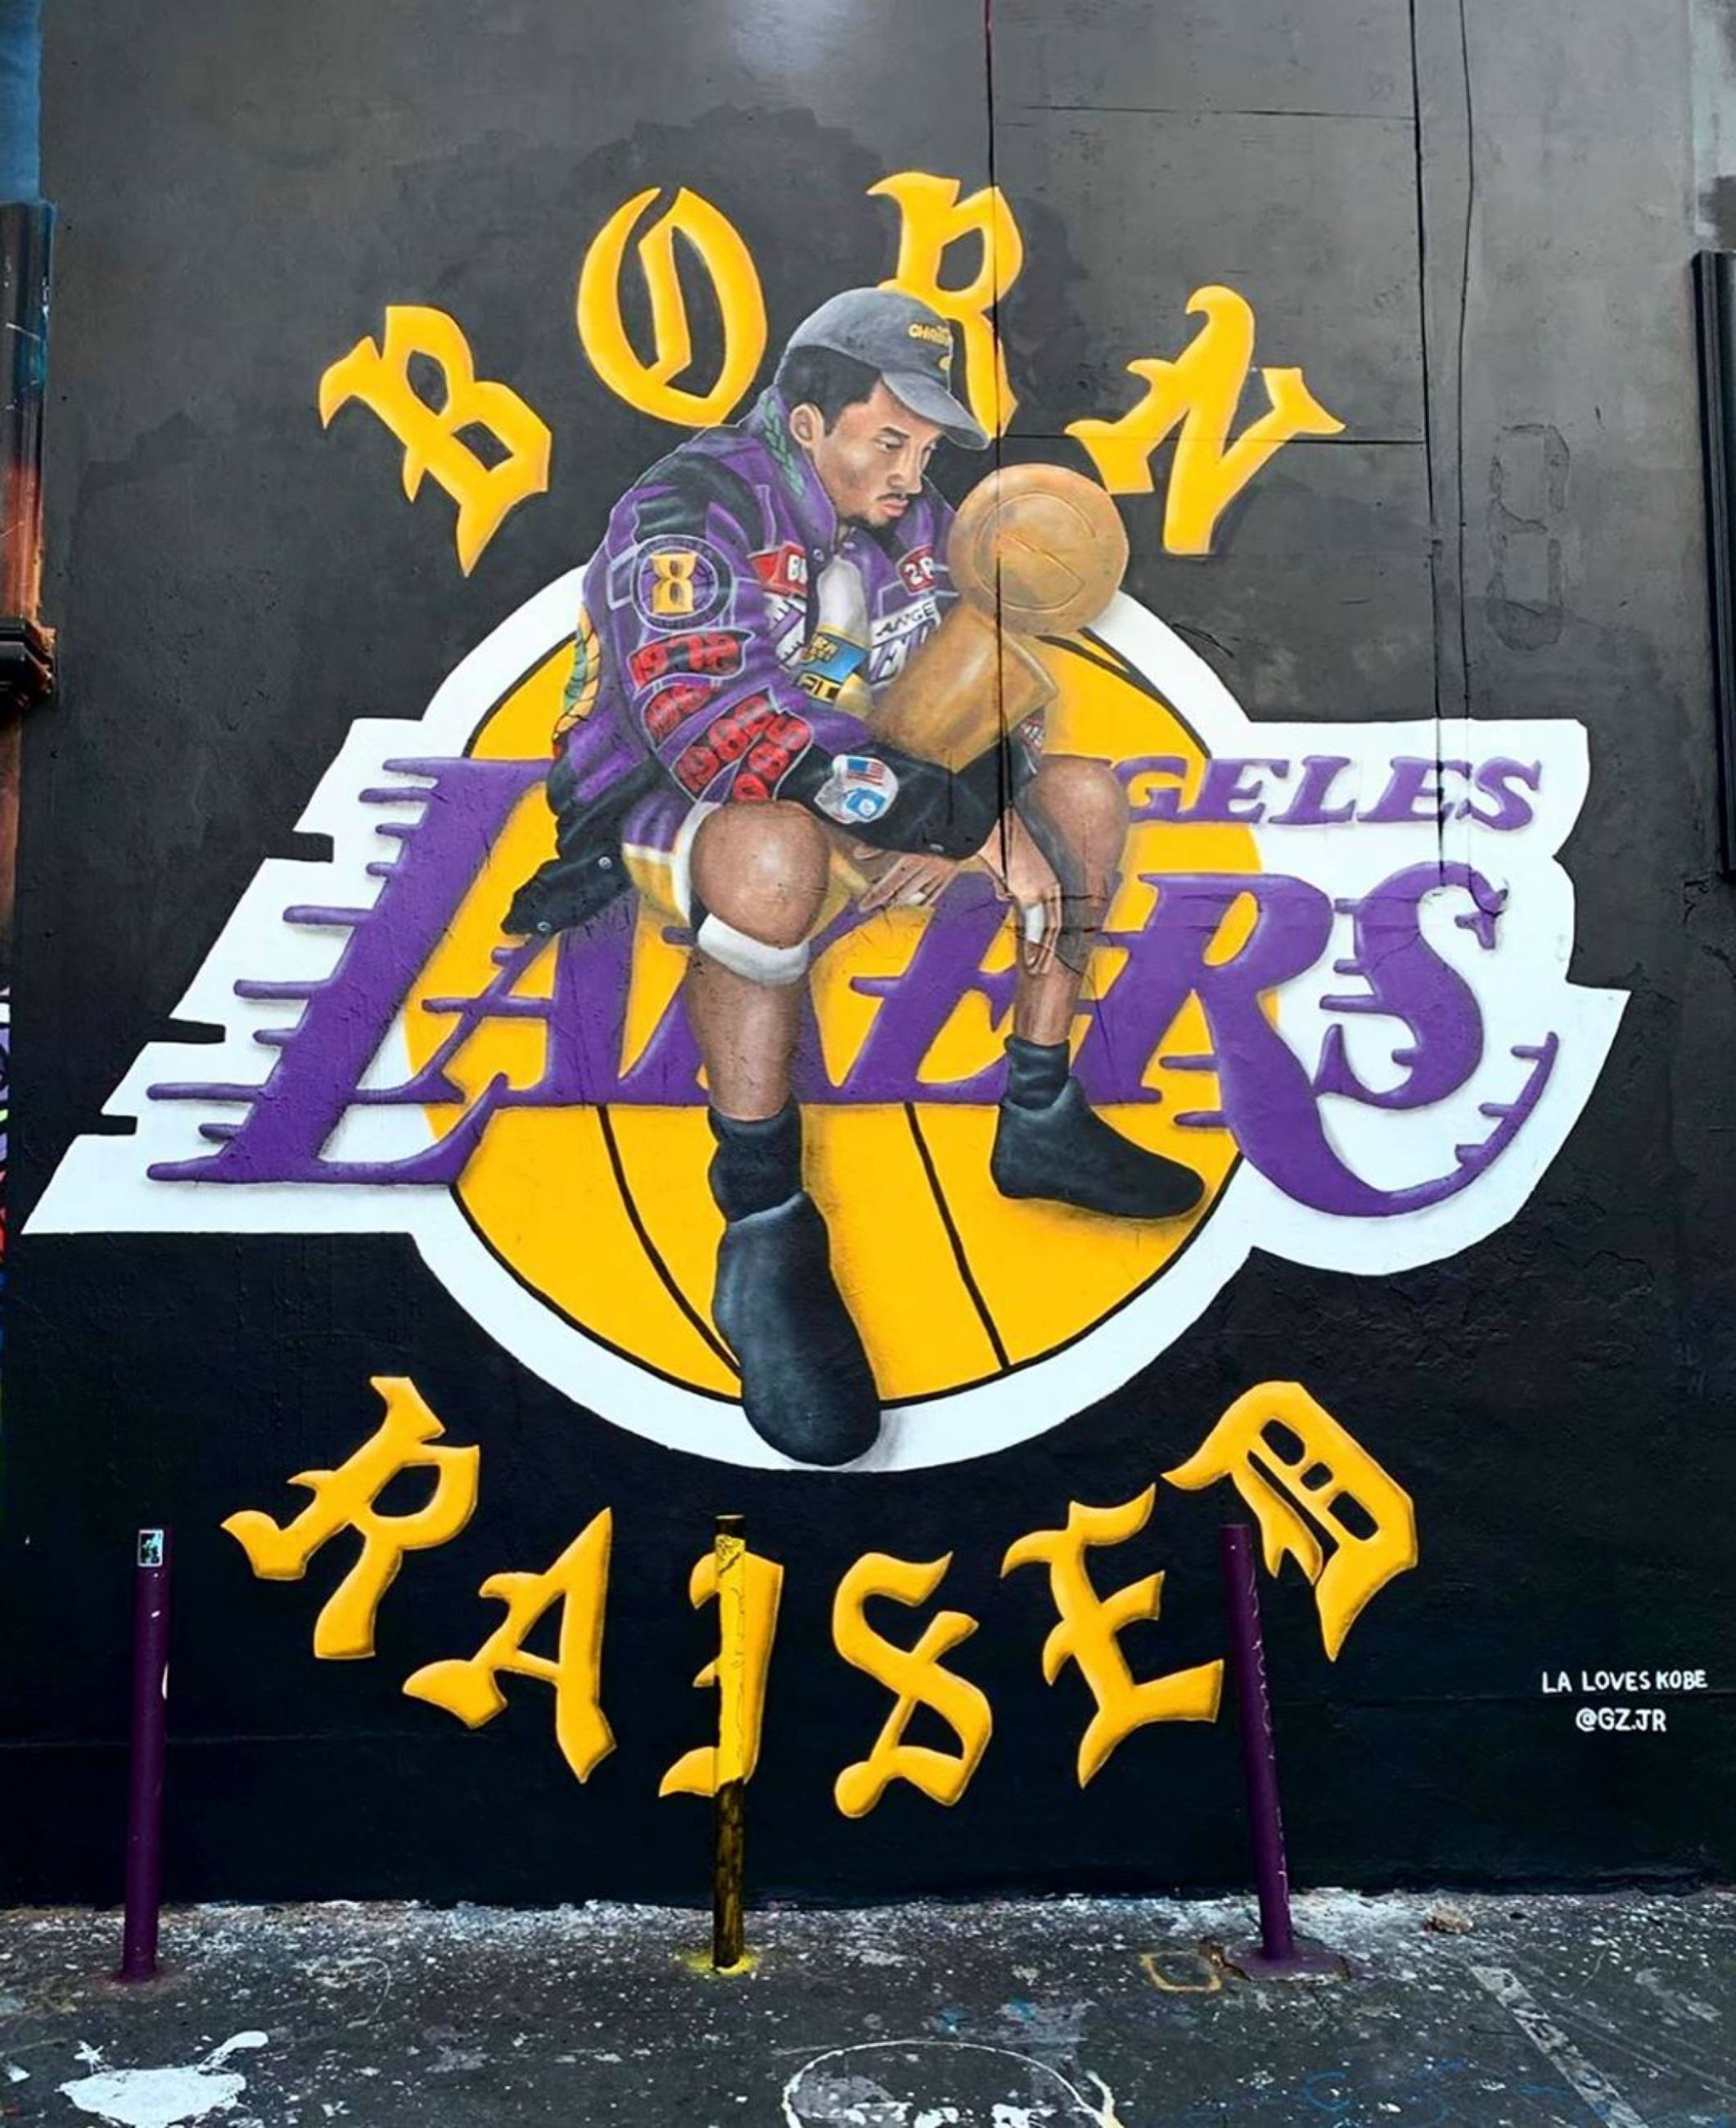 Kobe Bryant mural by @gz.jr and @bornxraised at Sportie LA on Melrose